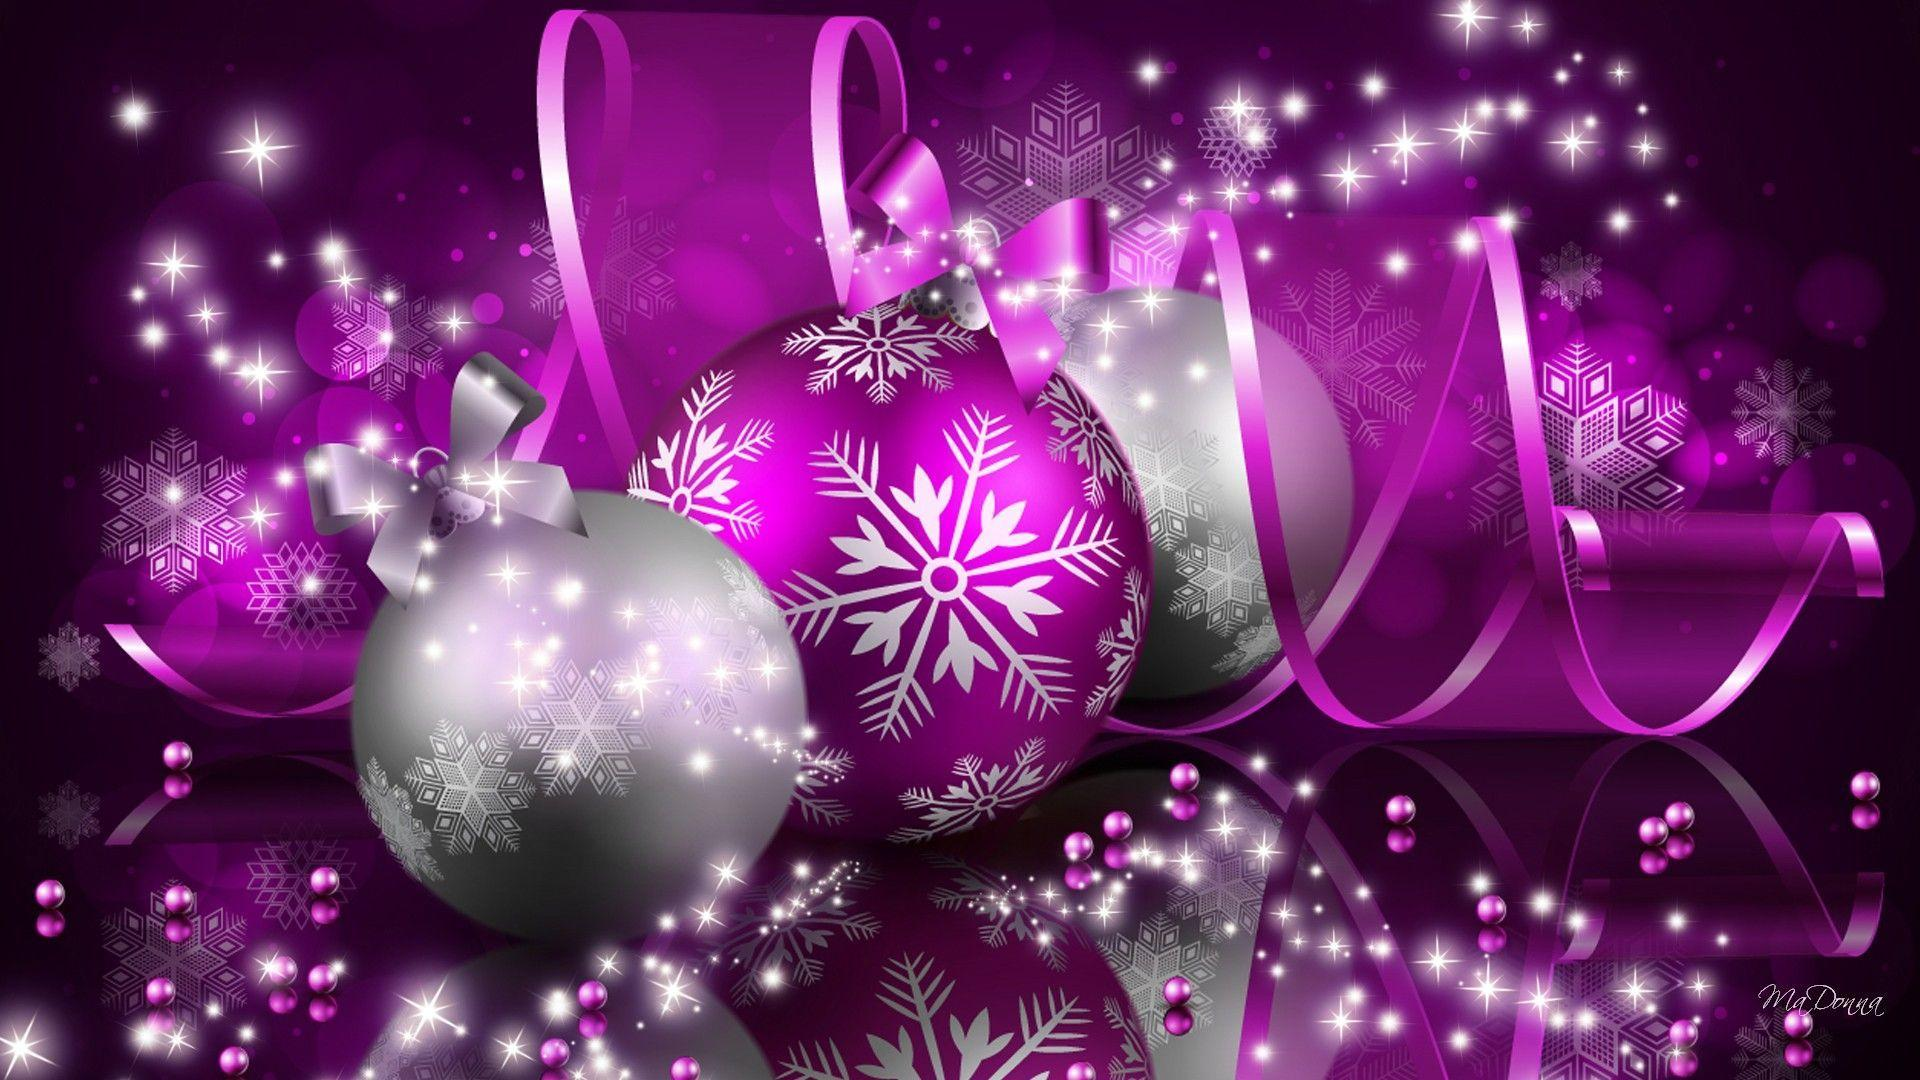 Christmas Decorations Wallpapers - Wallpaper Cave